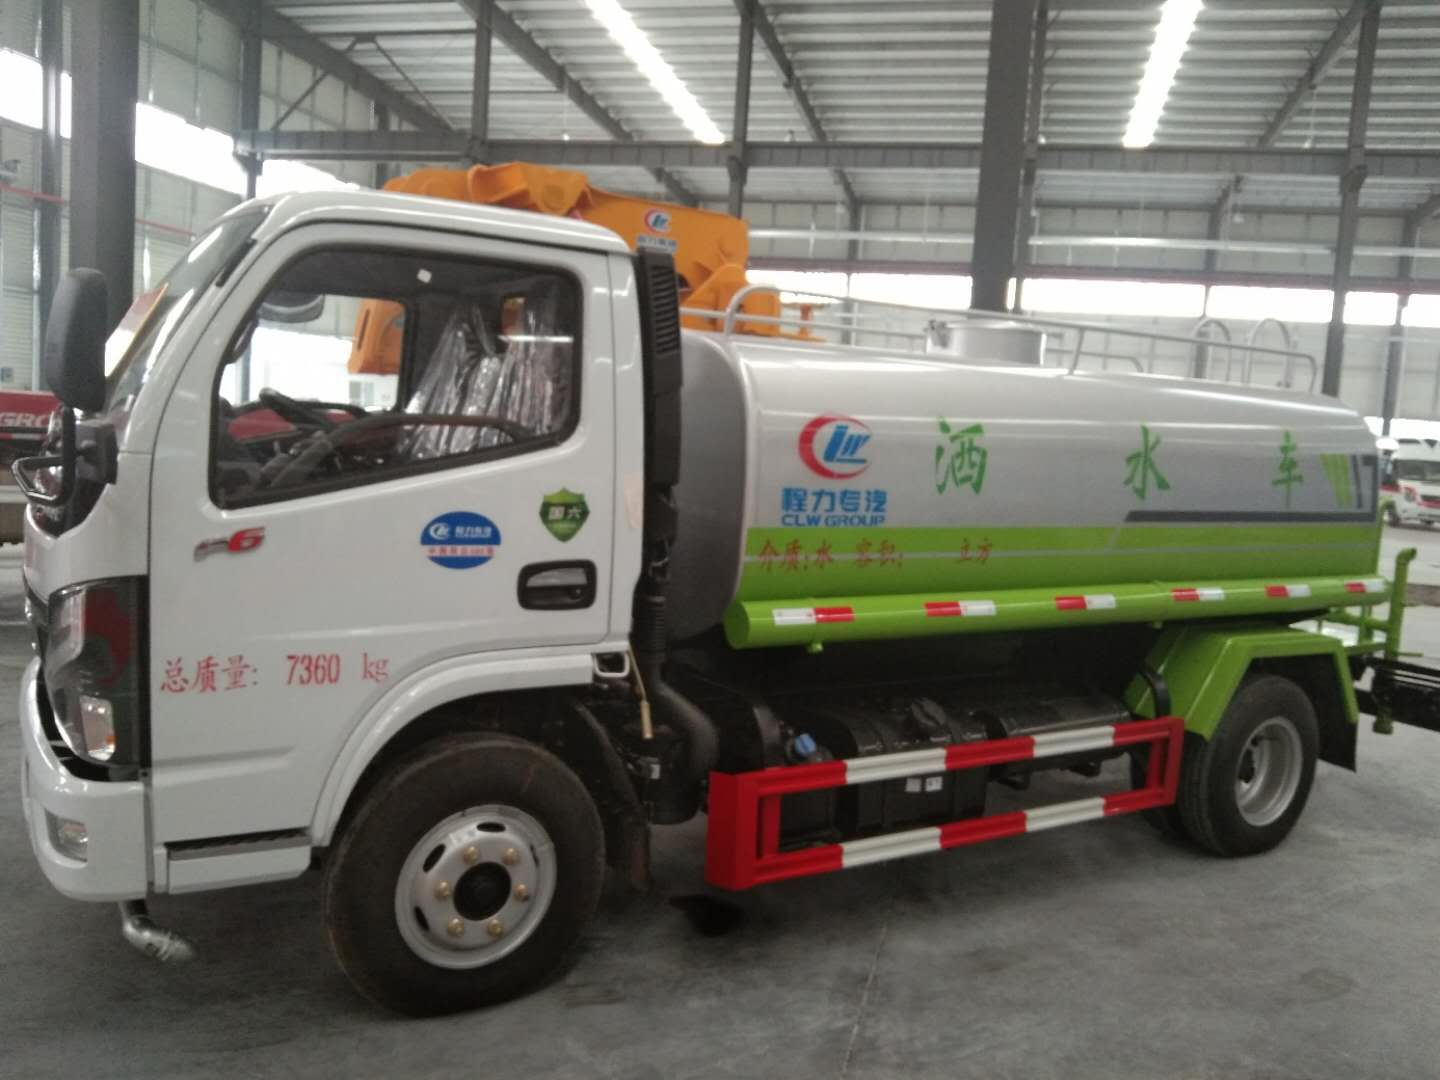 Water tanker trucks